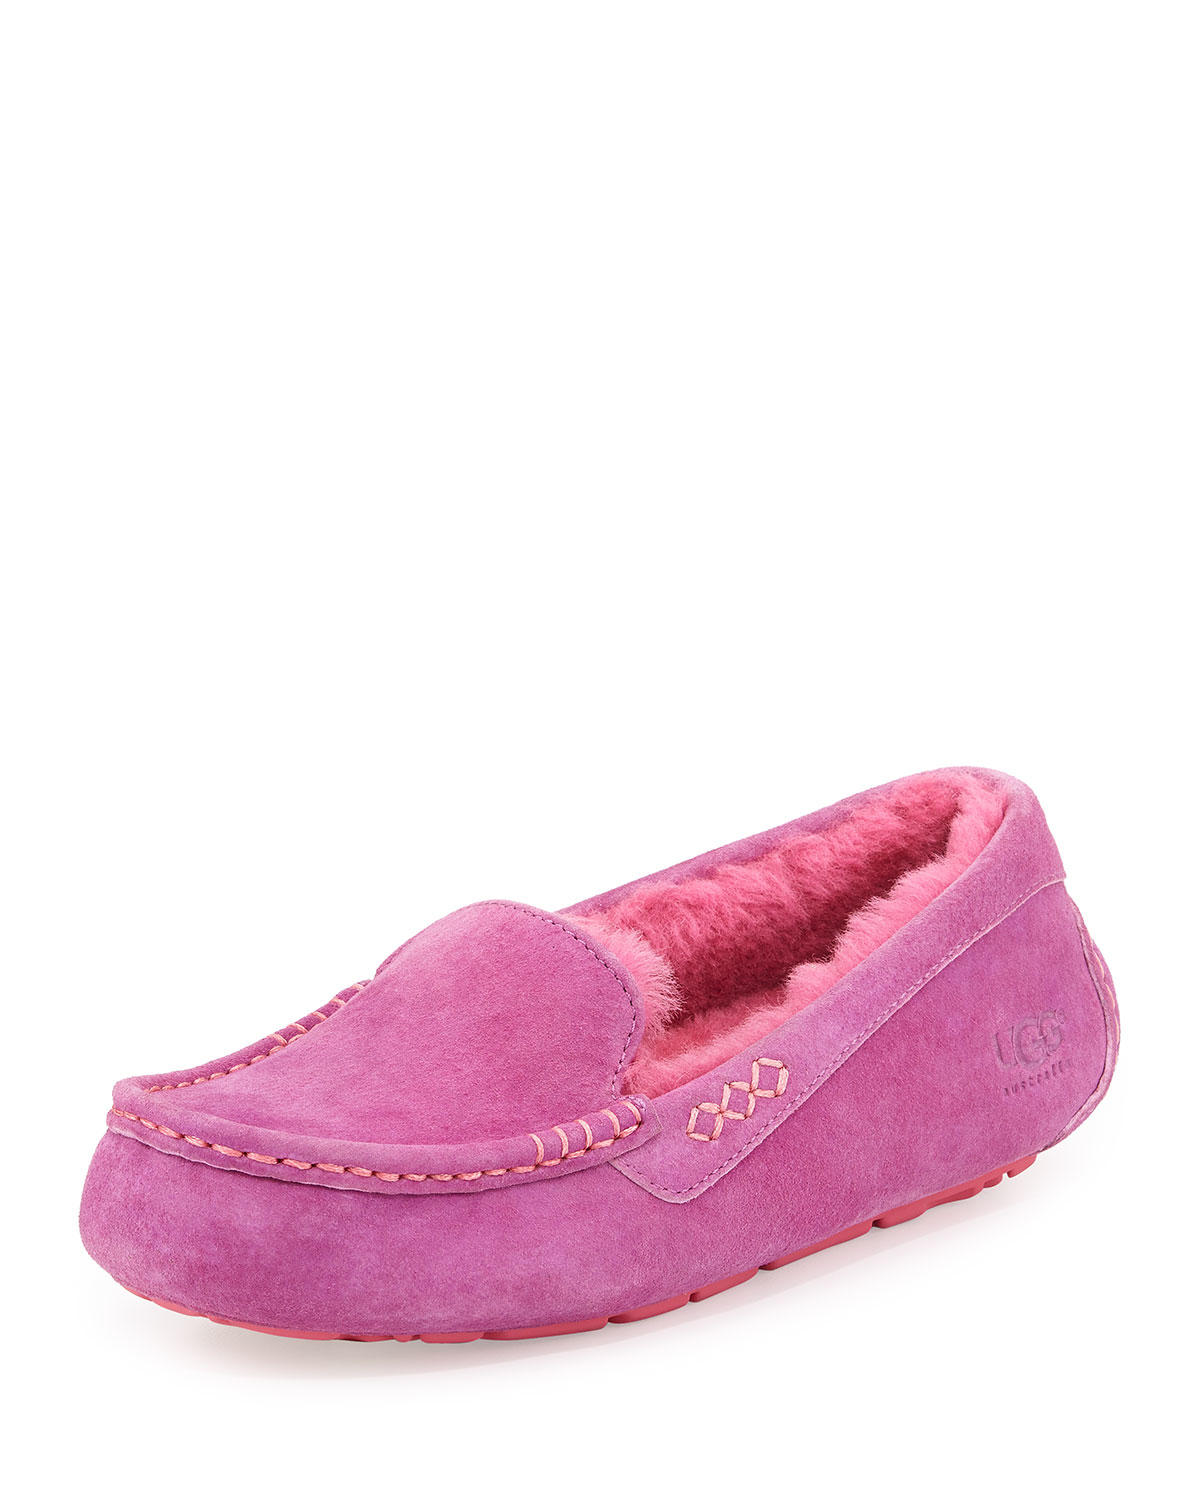 ansley moccasin slipper pink from neiman marcus want